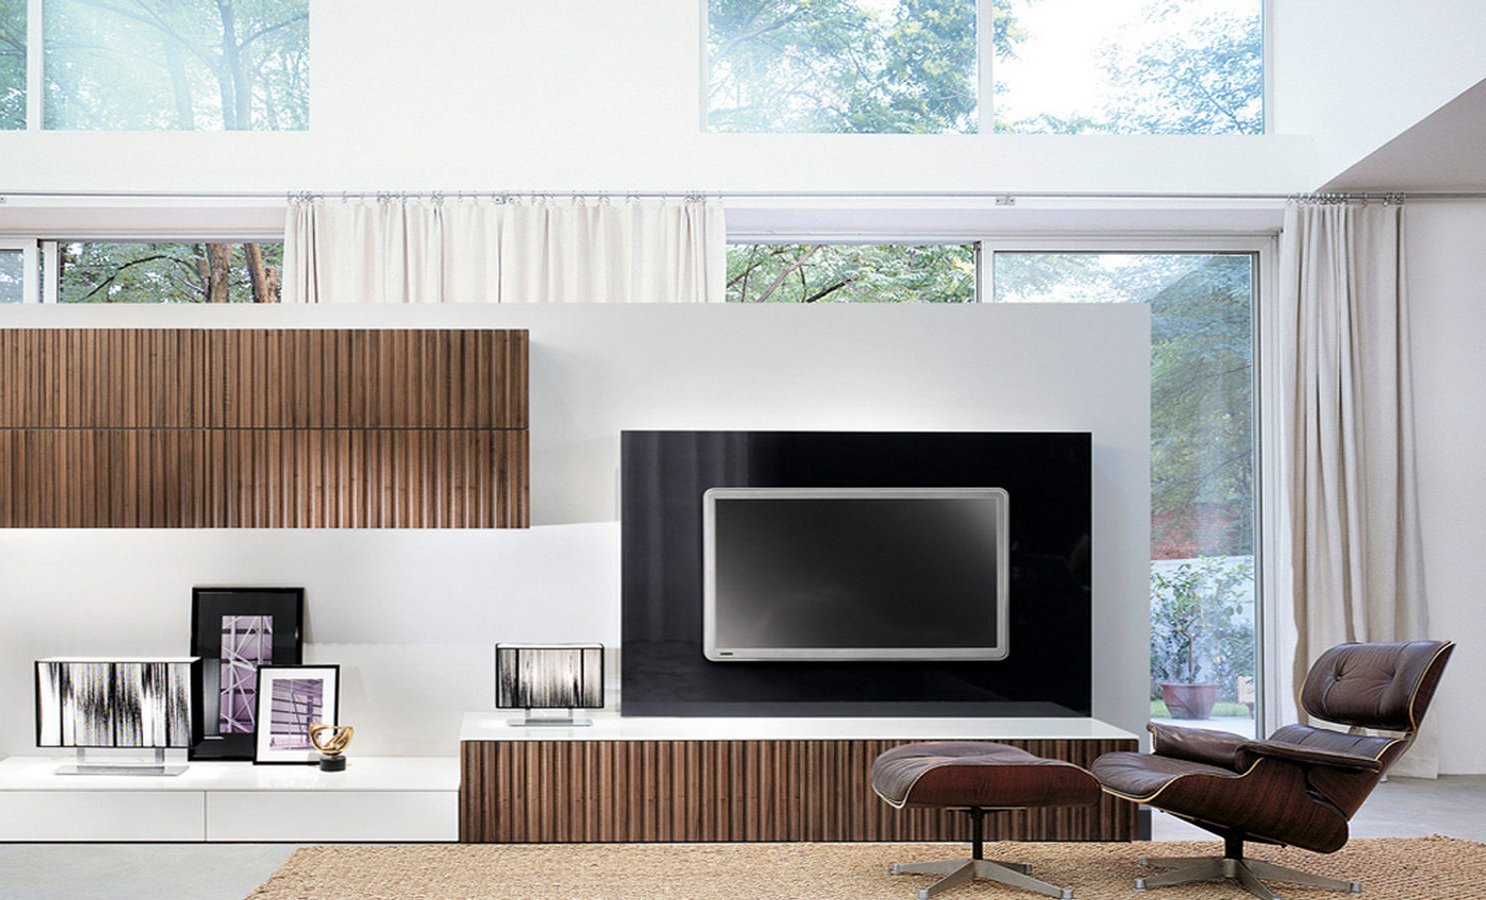 Open Air Spacious Room With White Divider Combine Blonde Wooden Wall With Most Popular Contemporary Tv Wall Units (Gallery 10 of 20)